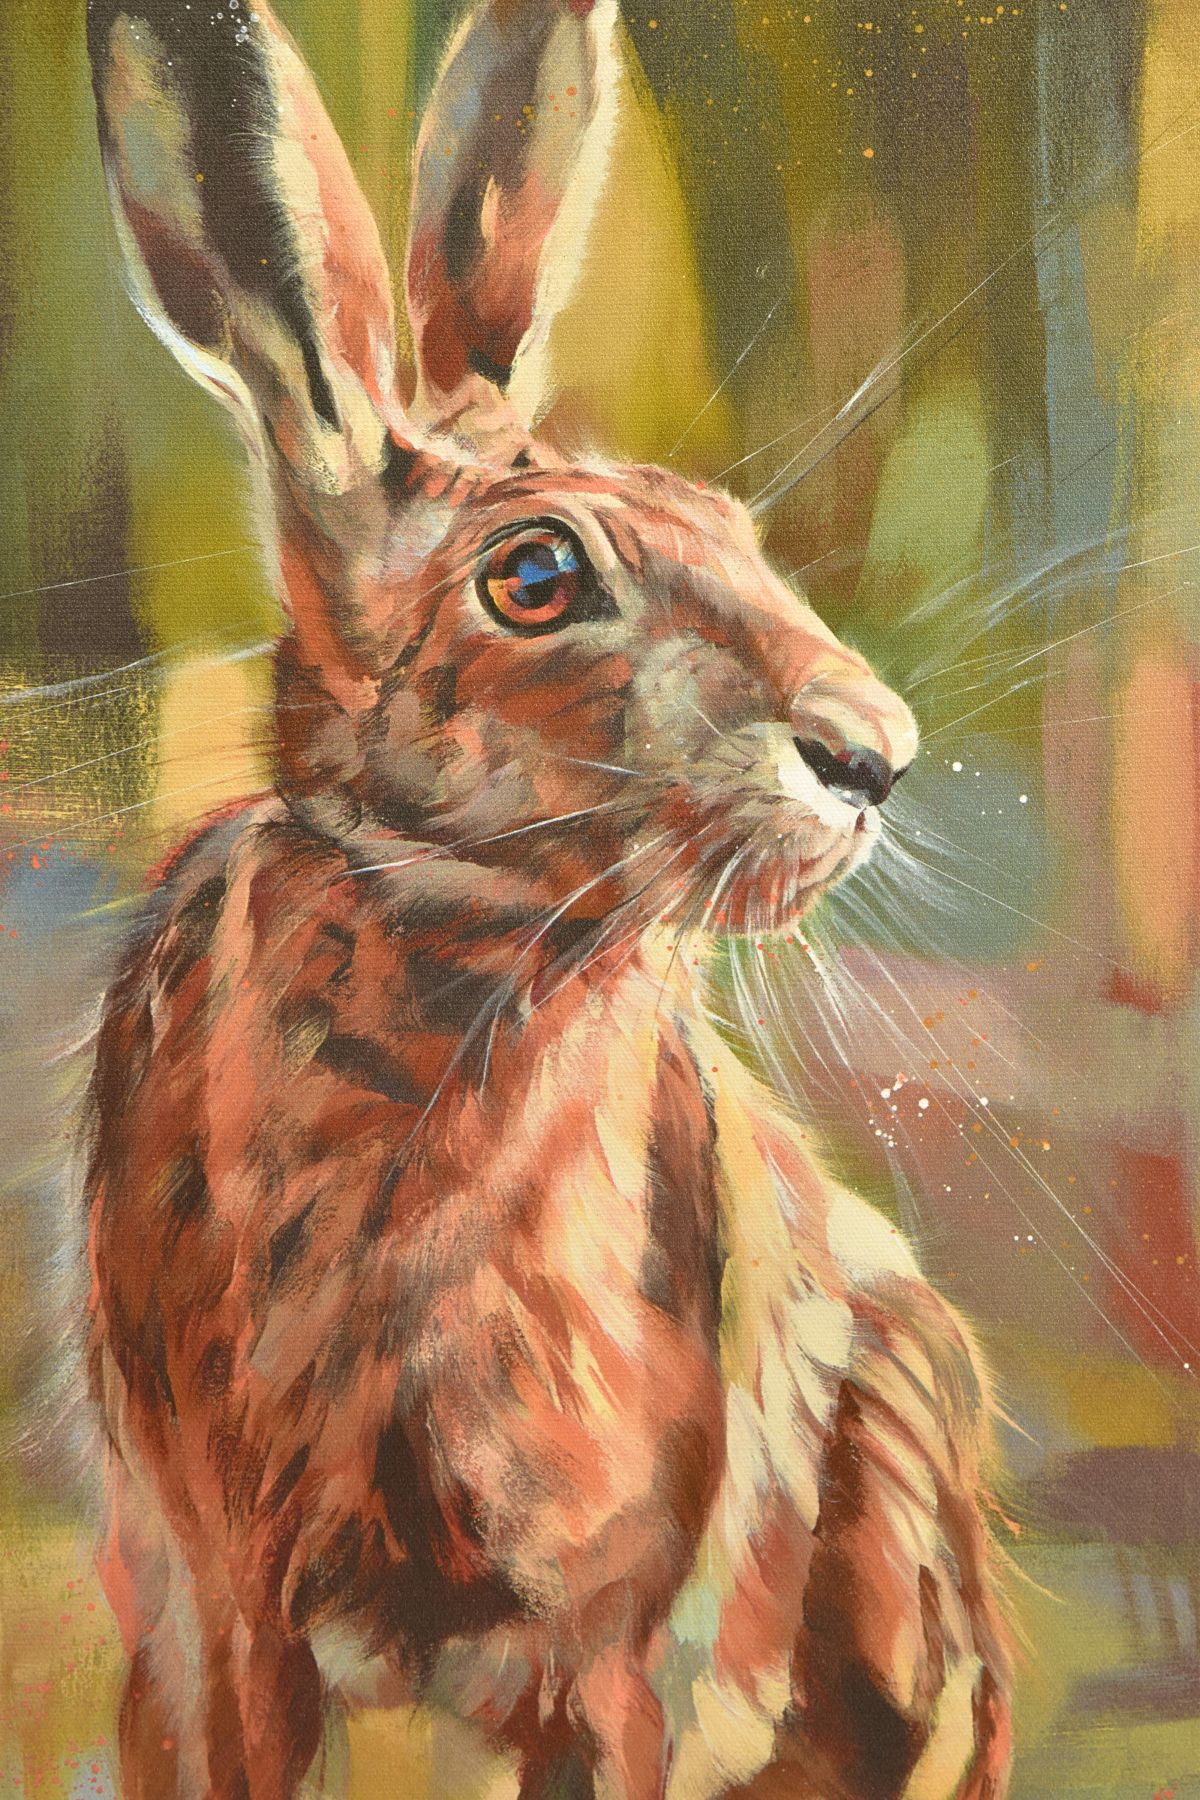 DEBBIE BOON (BRITISH CONTEMPORARY) 'POISED FOR ACTION' a limited edition print of Hare 57/195, - Image 2 of 7